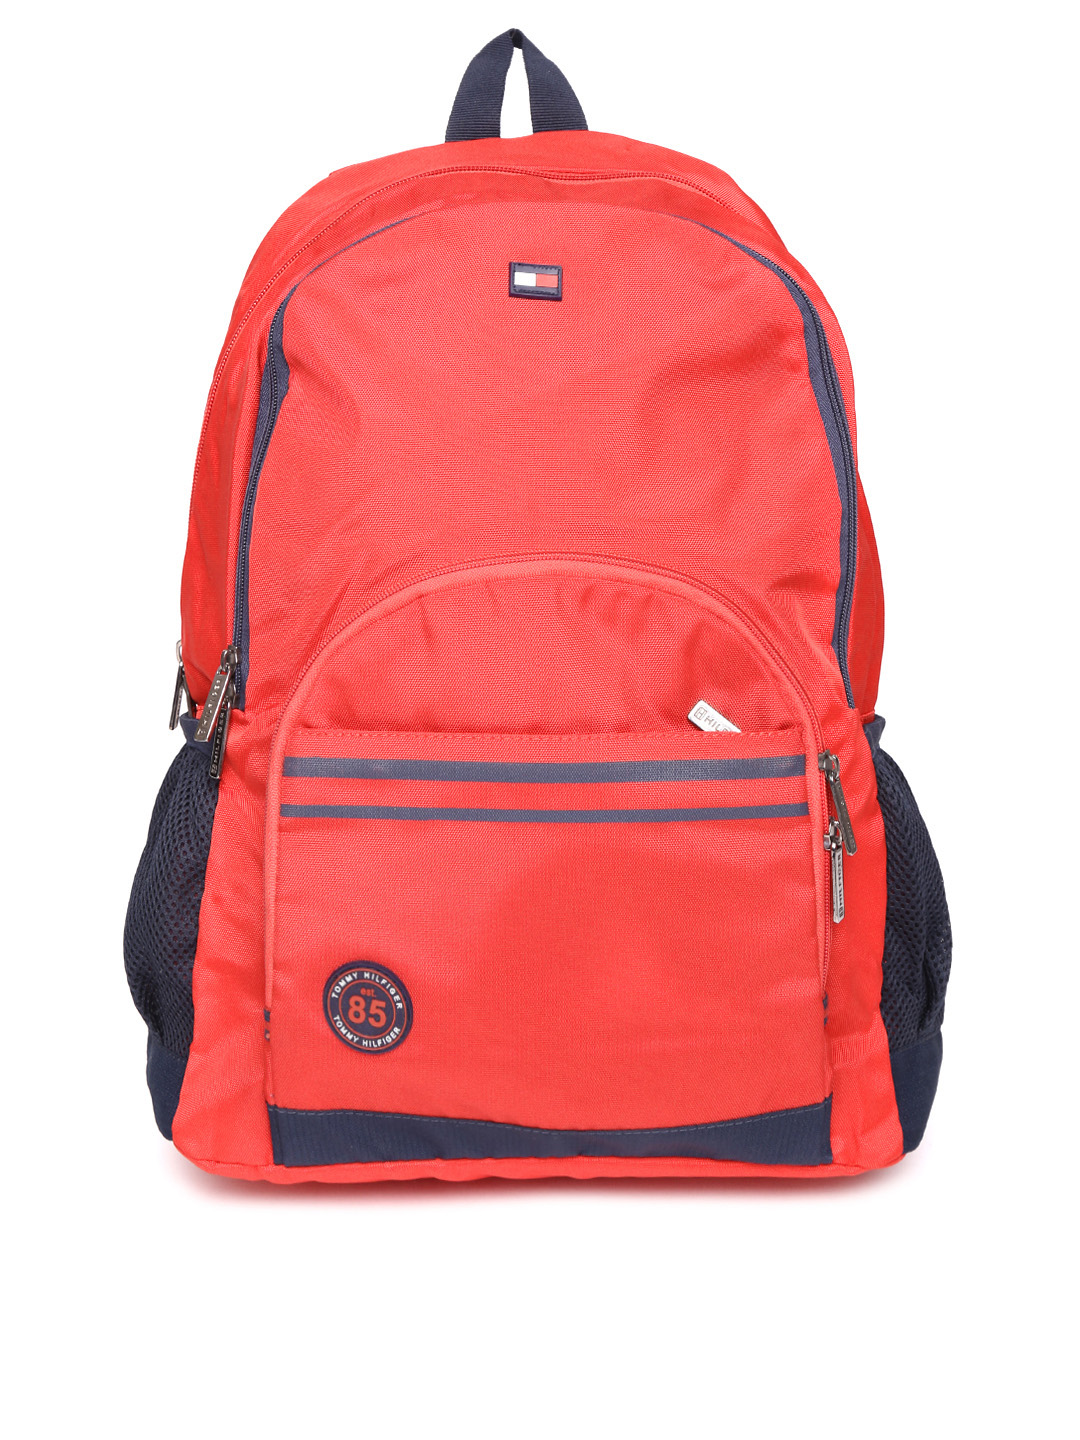 Tommy Hilfiger Unisex Red Solid Backpack